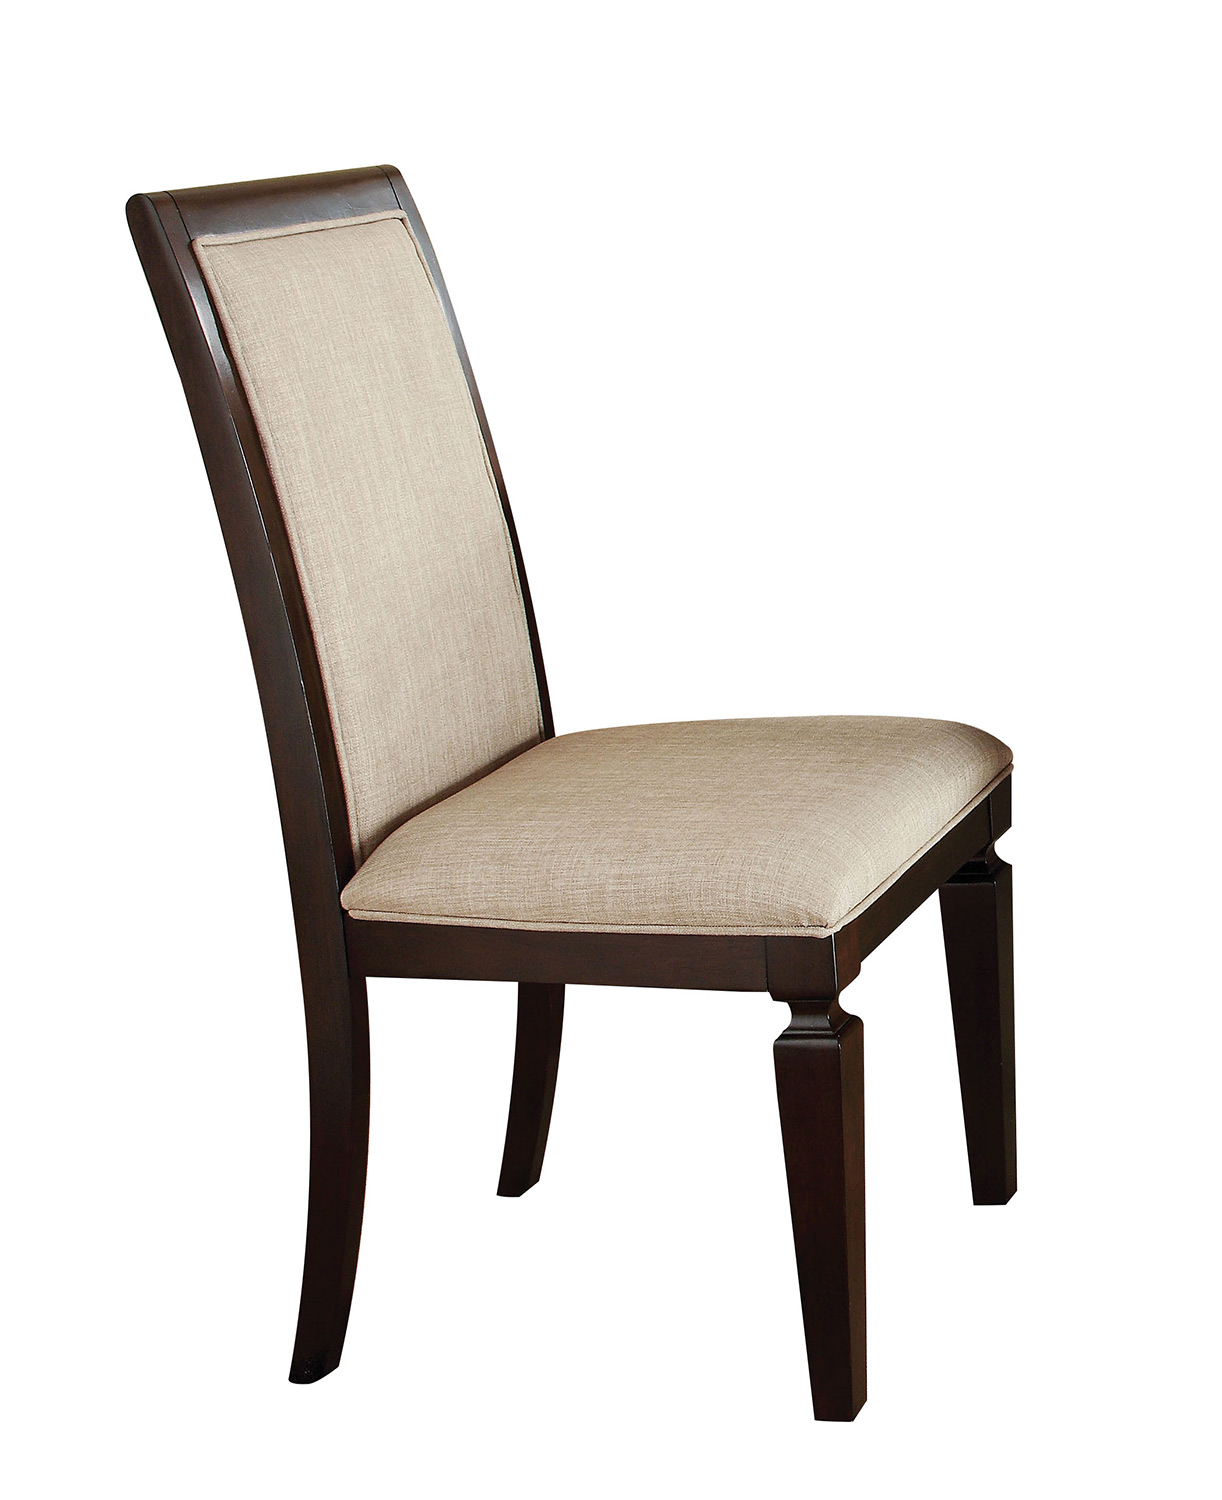 Acme Agatha Side Chair - Linen/Espresso